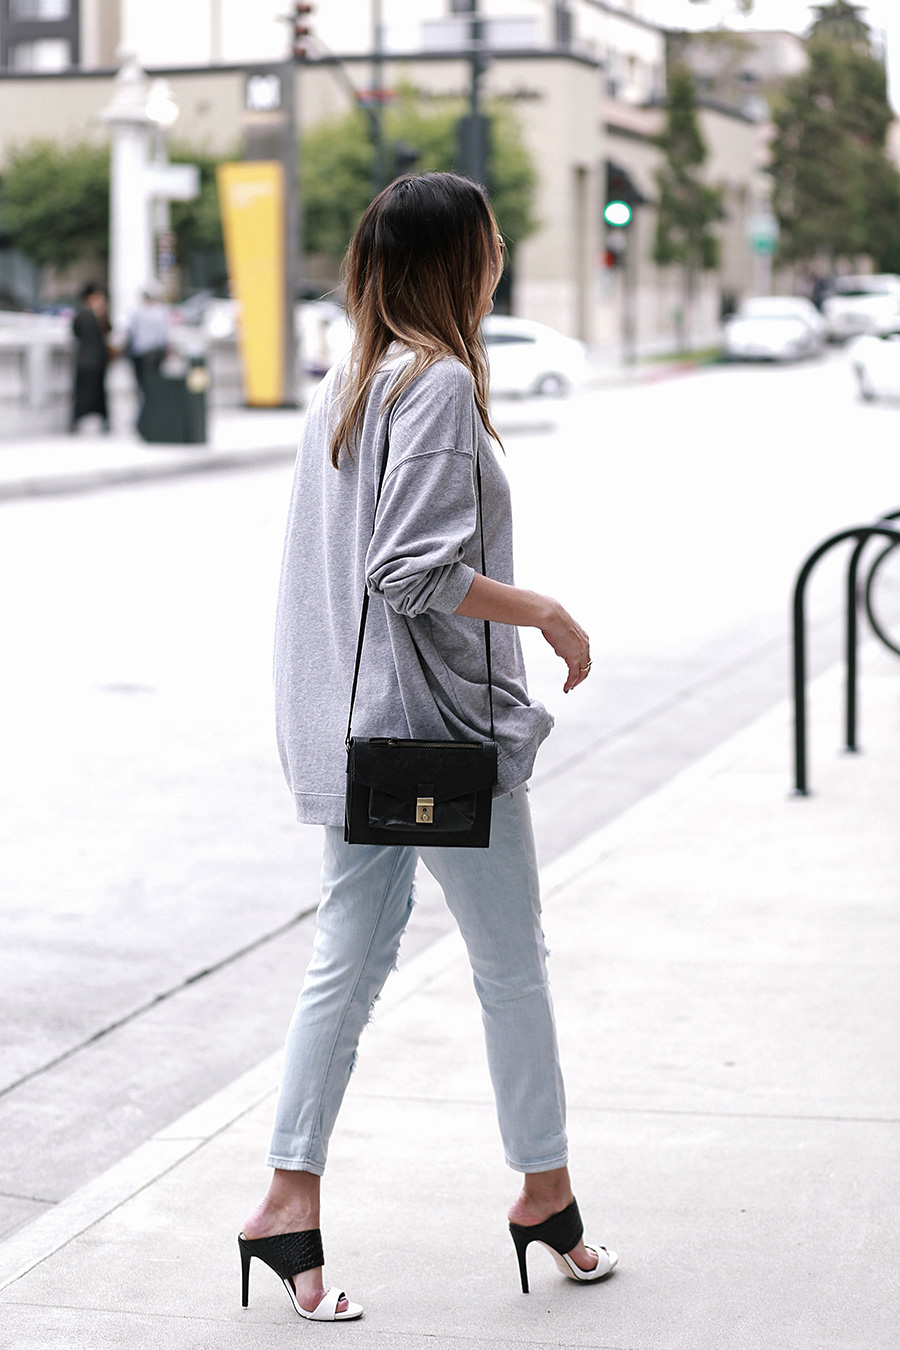 hm sweater guess jeans guess heels asos crossbody 6